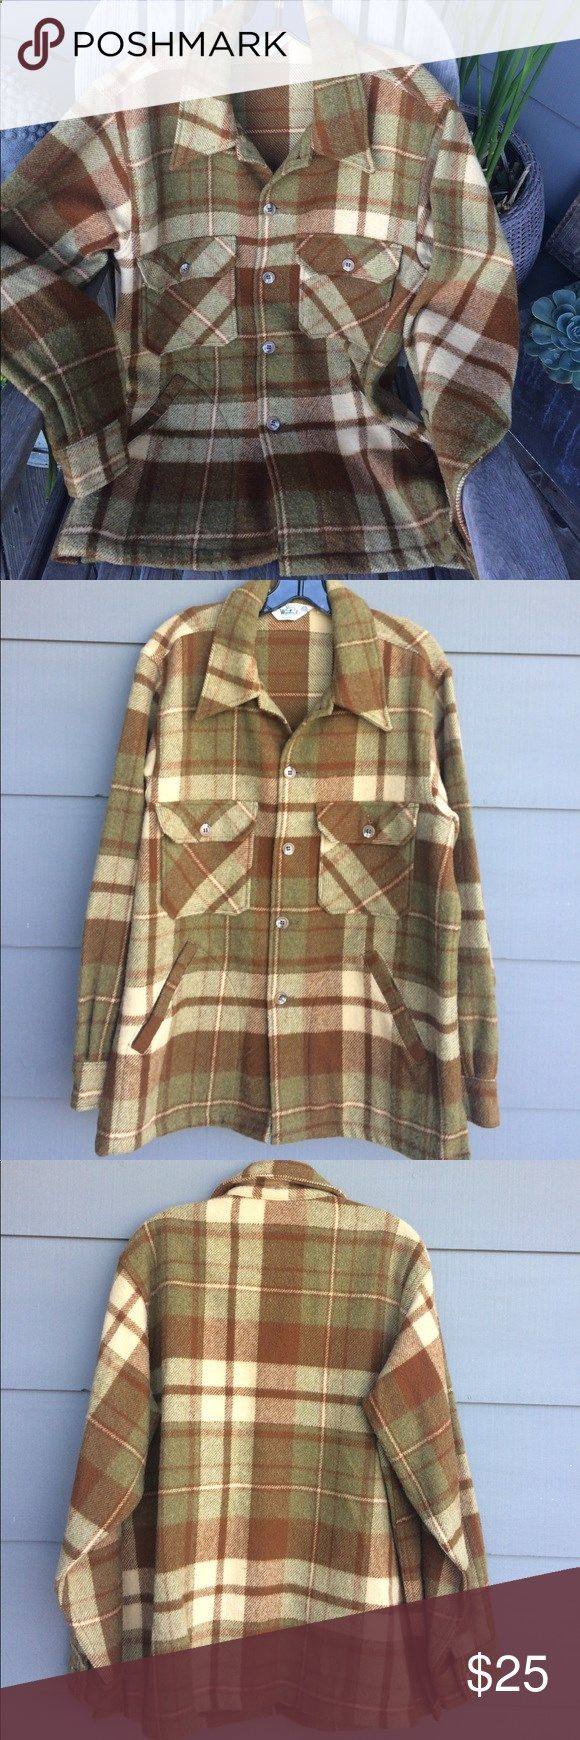 Vintage Woolrich Plaid wool Jscket Awesome vintage Woolrich mens jacket with side pockets. Excellent condition. Such a cool hipster look for men or women. Woolrich Jackets  Coats Lightweight  Shirt Jackets